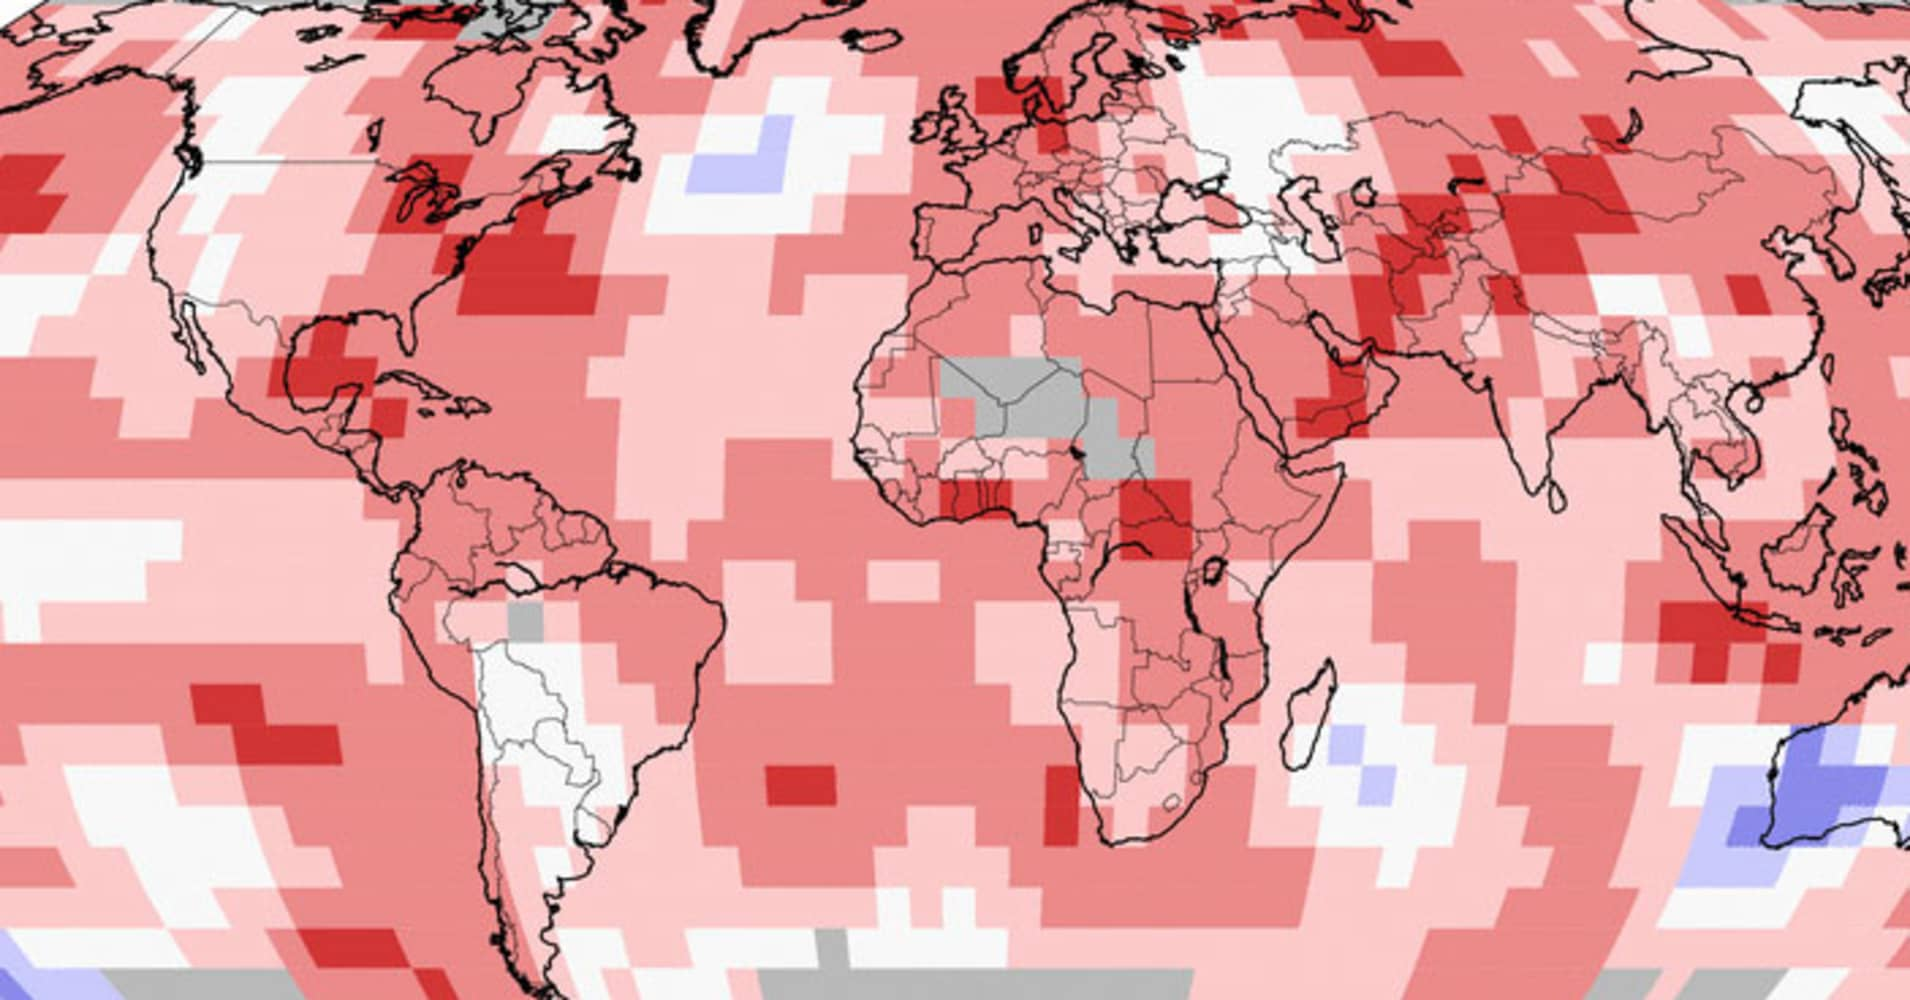 a7e1ea61302 September broke a 16-month streak of record warm temperatures around the  globe